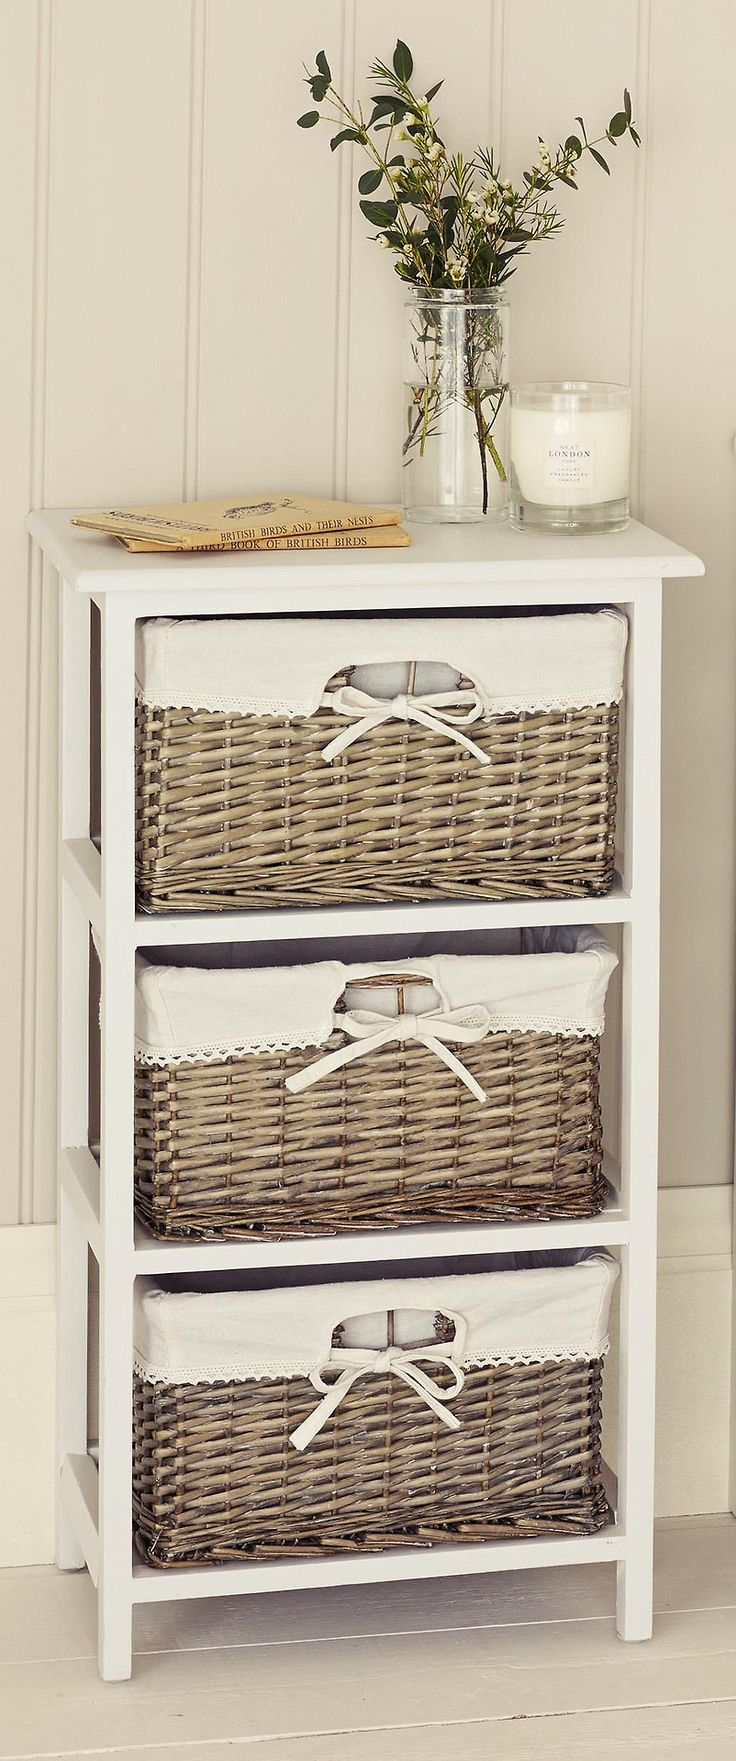 Digital Art Gallery Natural wicker drawer unit from Next